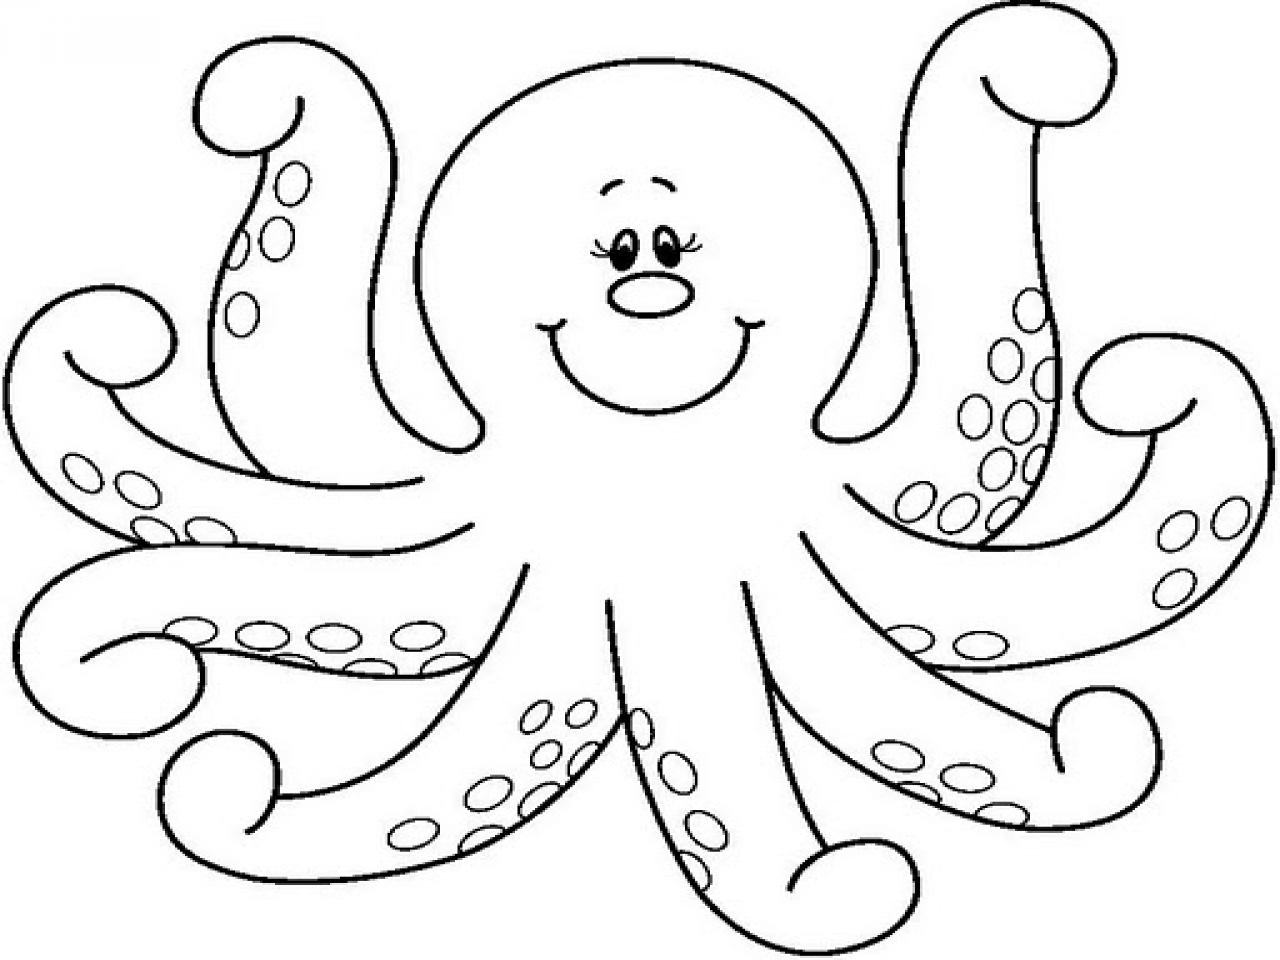 Free Octopus Clipart Black And White Download Free Clip